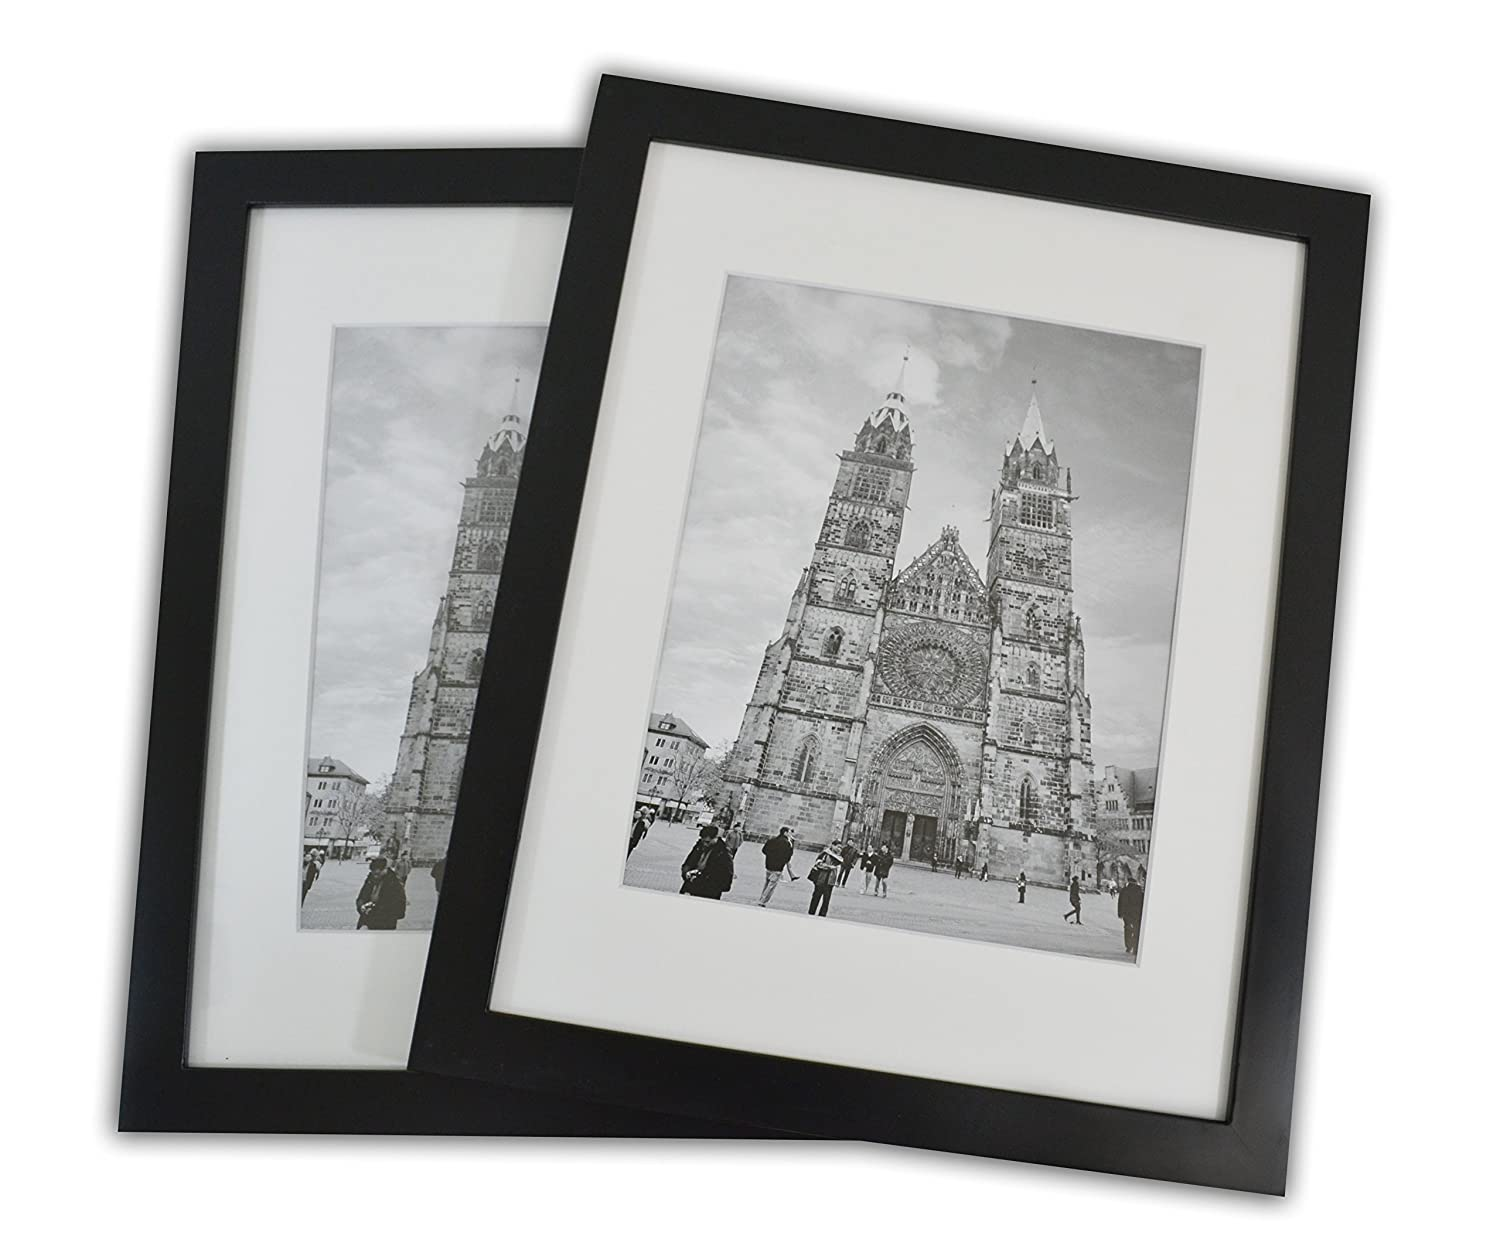 Amazon.com: 11x14 Photo Wood Frame with Mat (2 frames per box) BLACK ...